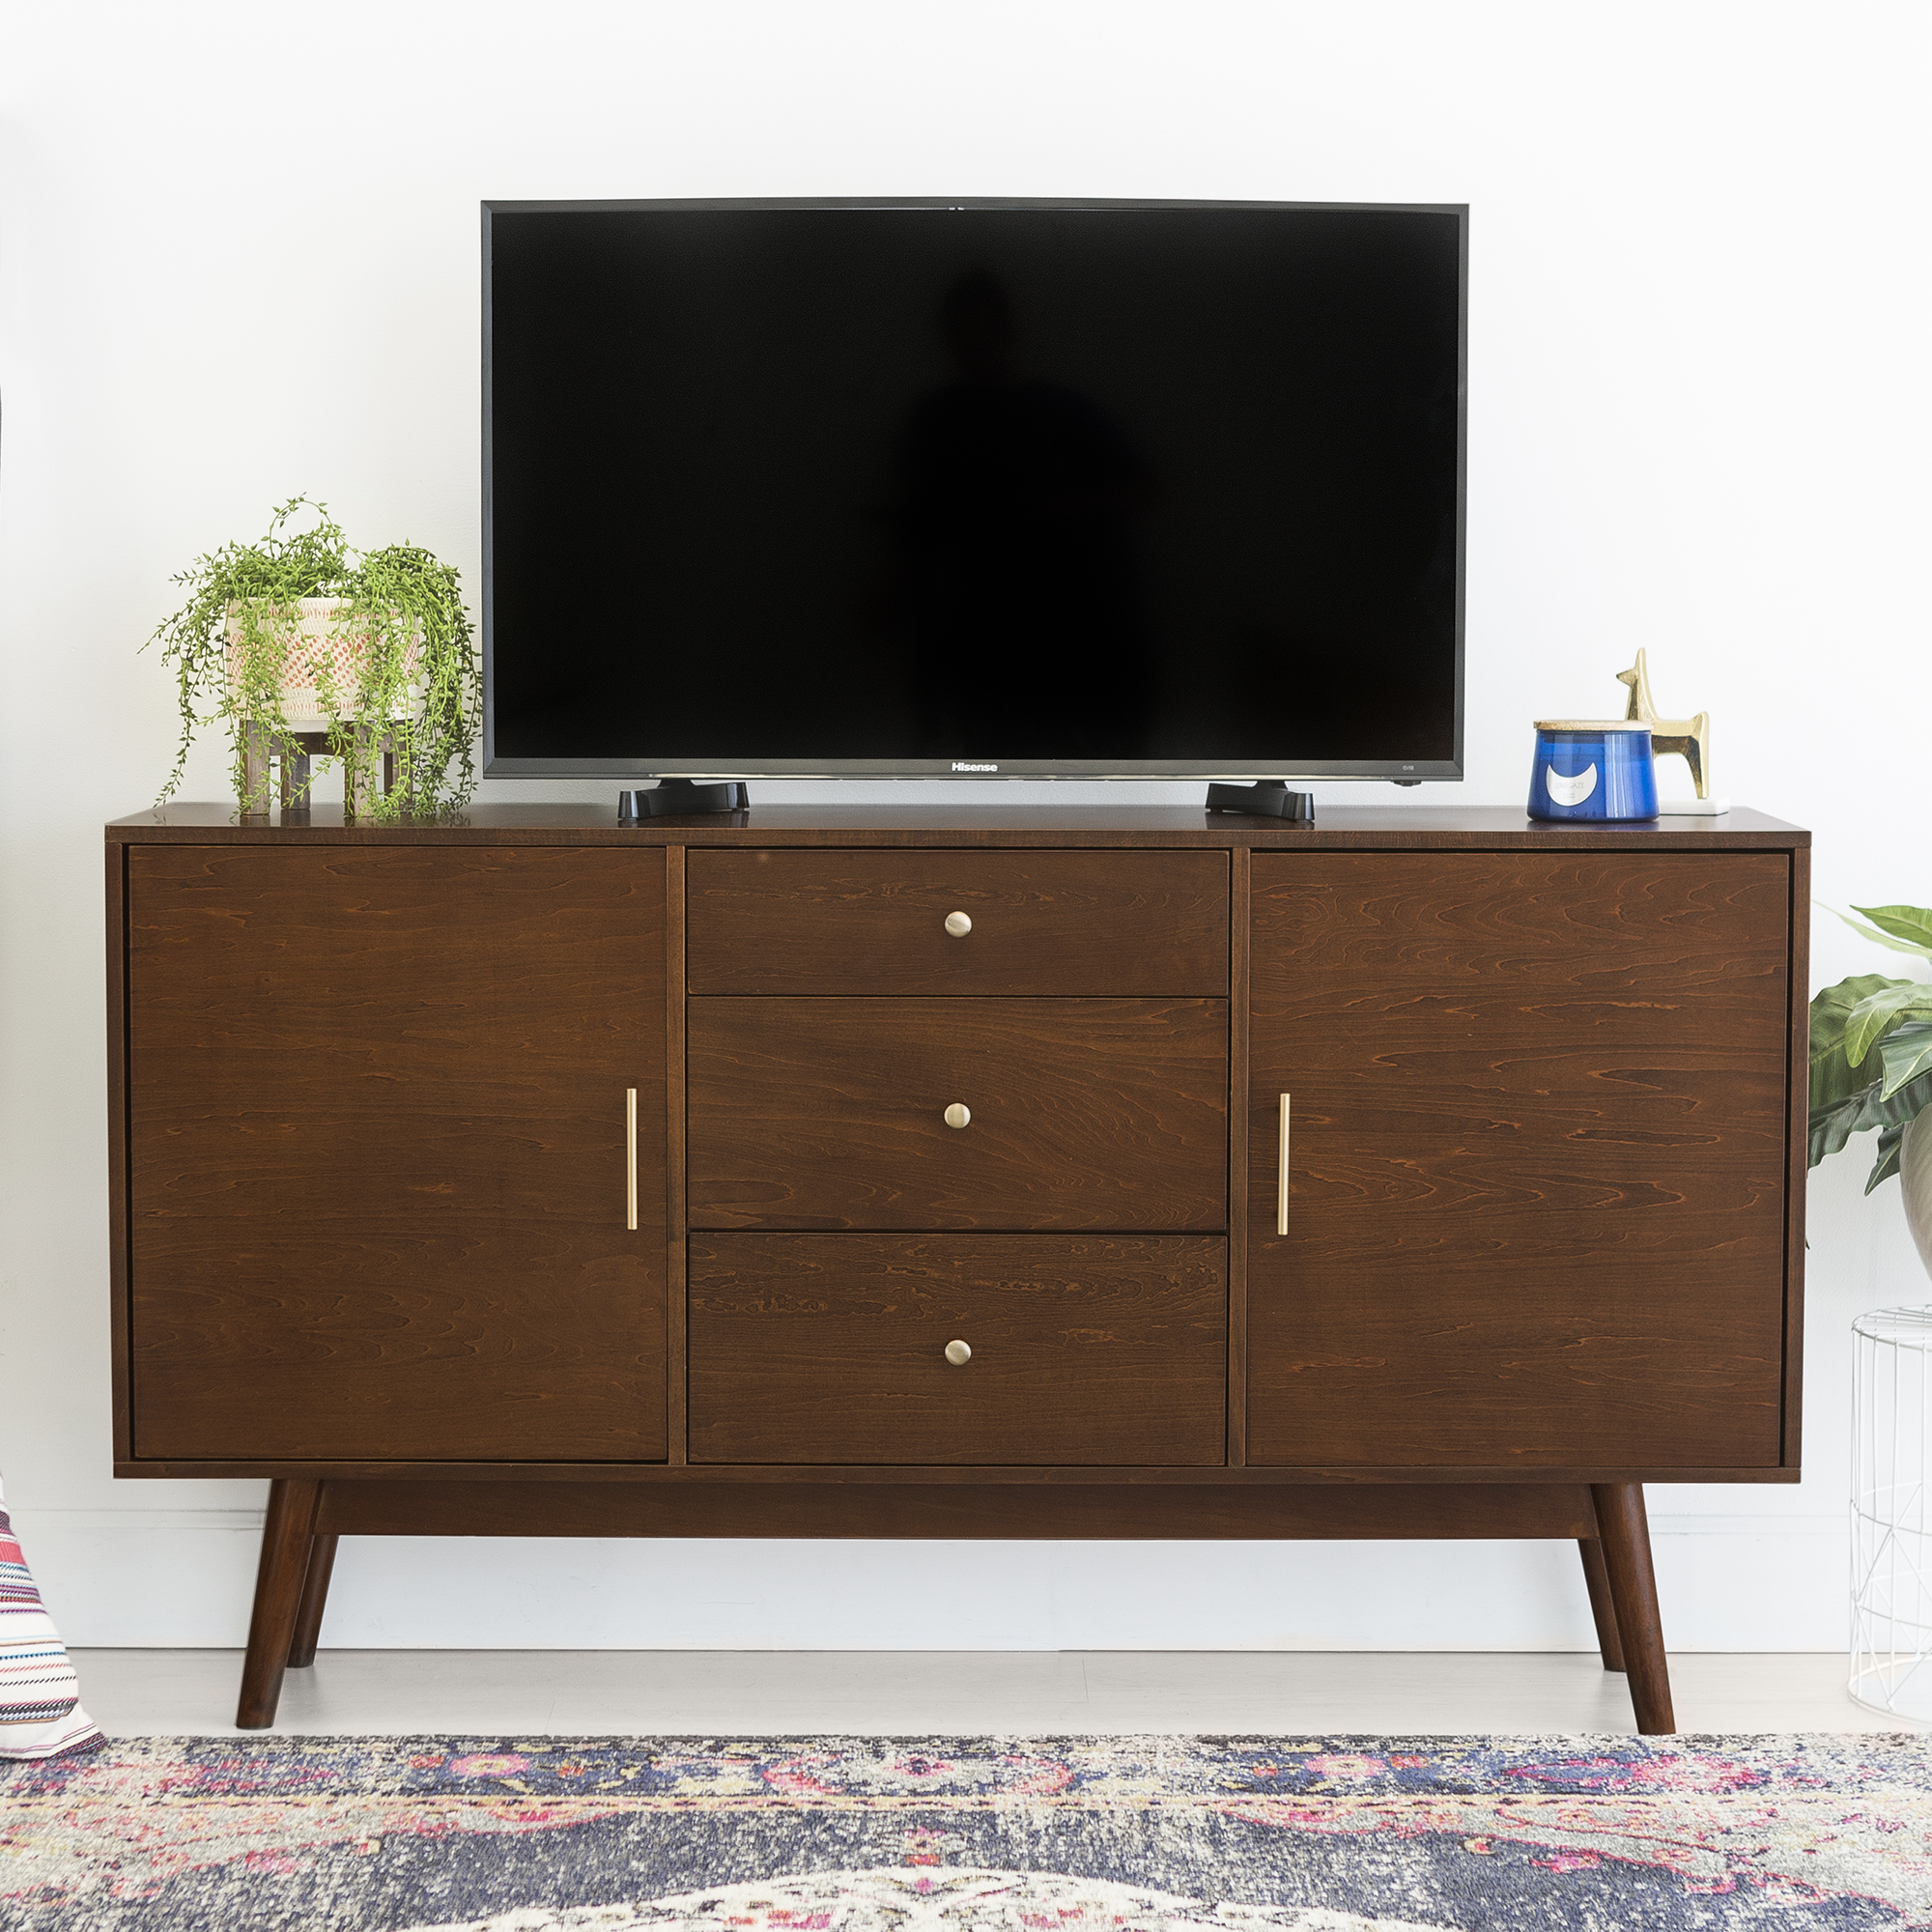 "60"" Mid-Century Modern Wood TV Stand Media Storage Console Entertainment Center - Walnut"